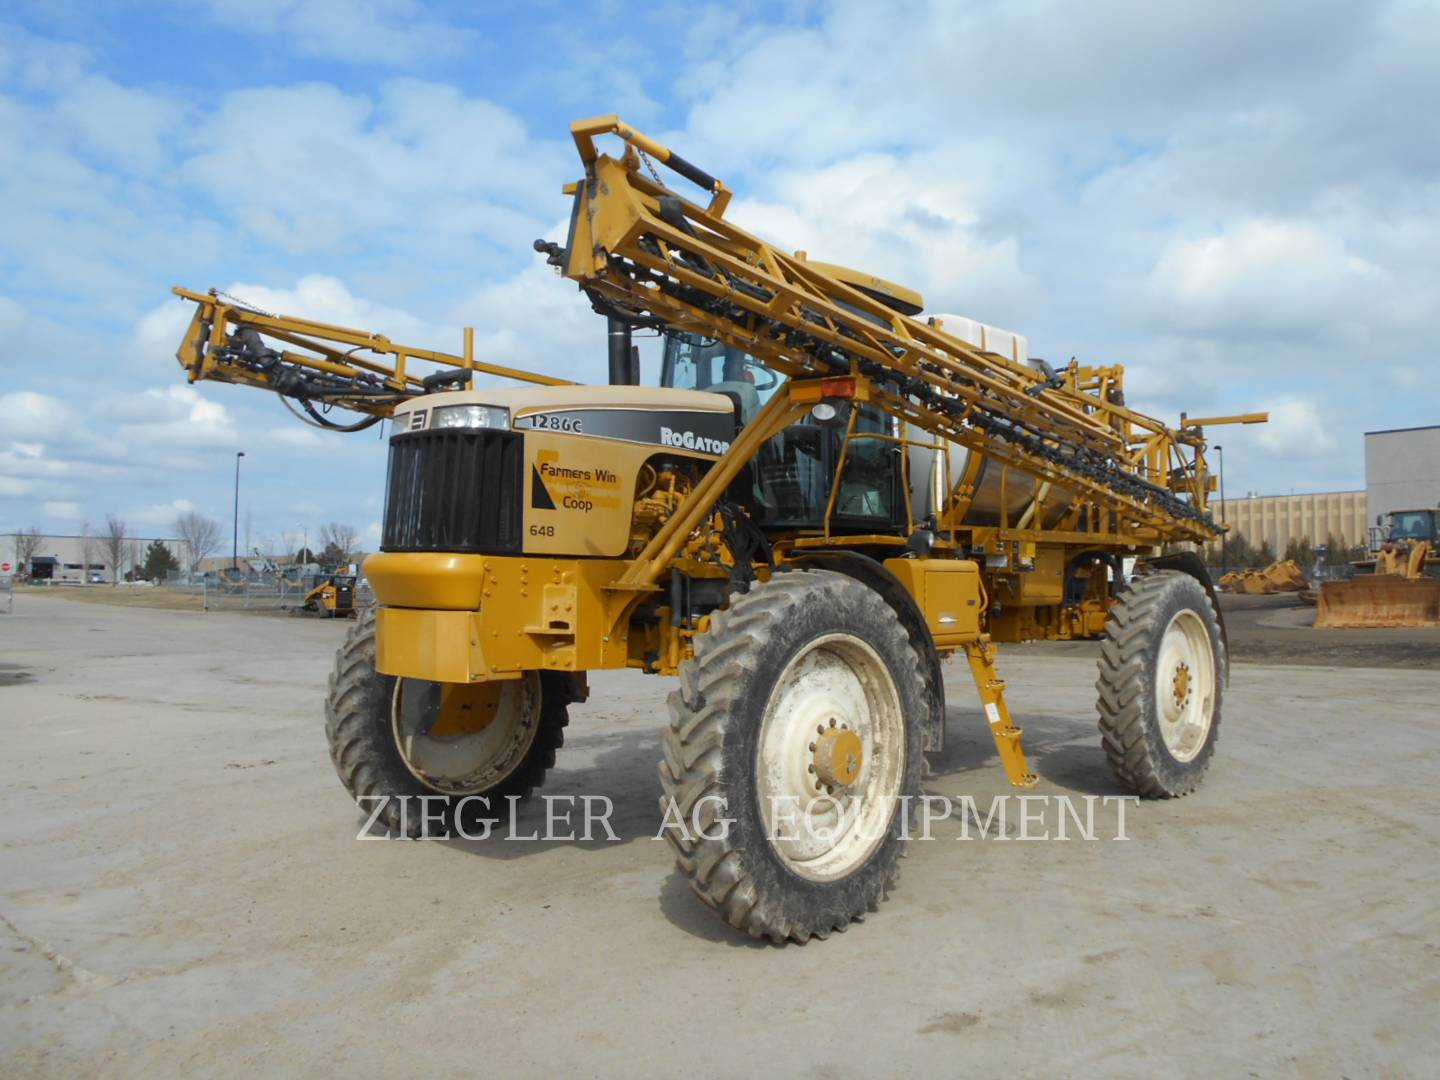 2008 Ag Chem 1286c Sprayer For Sale In Call For Location Mn